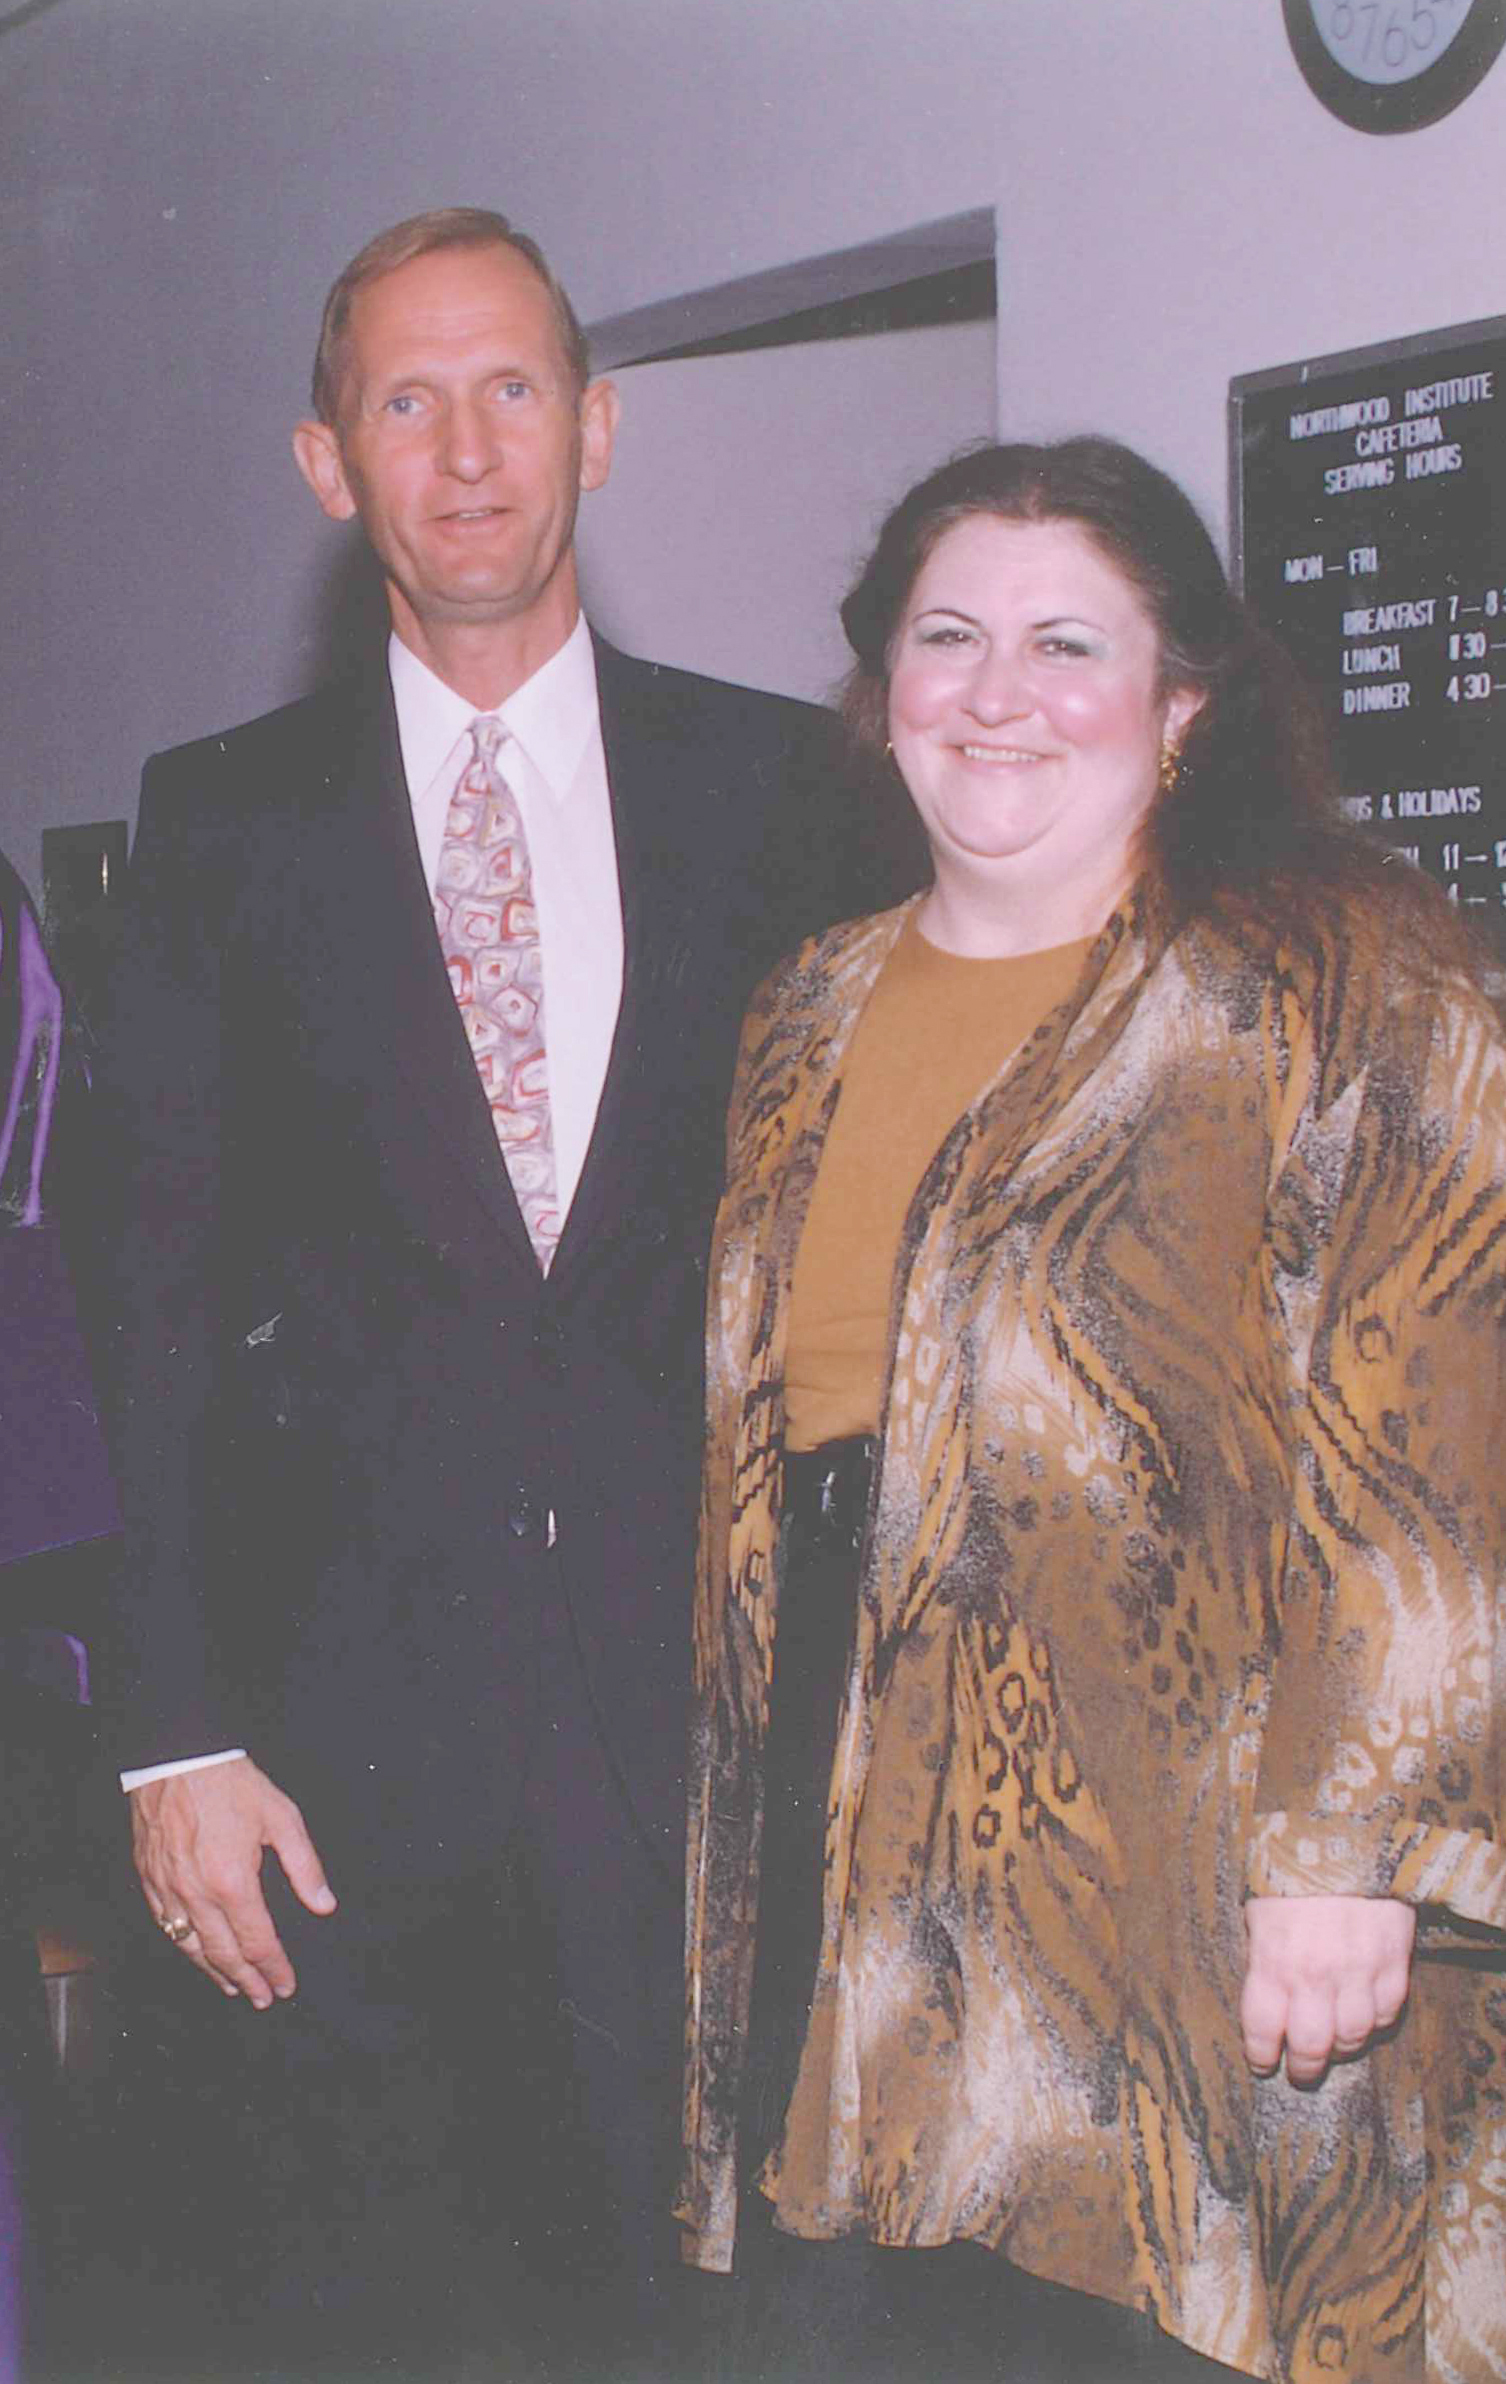 Professors Mike Tuttle and Cheryl Pridgeon enjoy a commencement ceremony in the early 1990's.